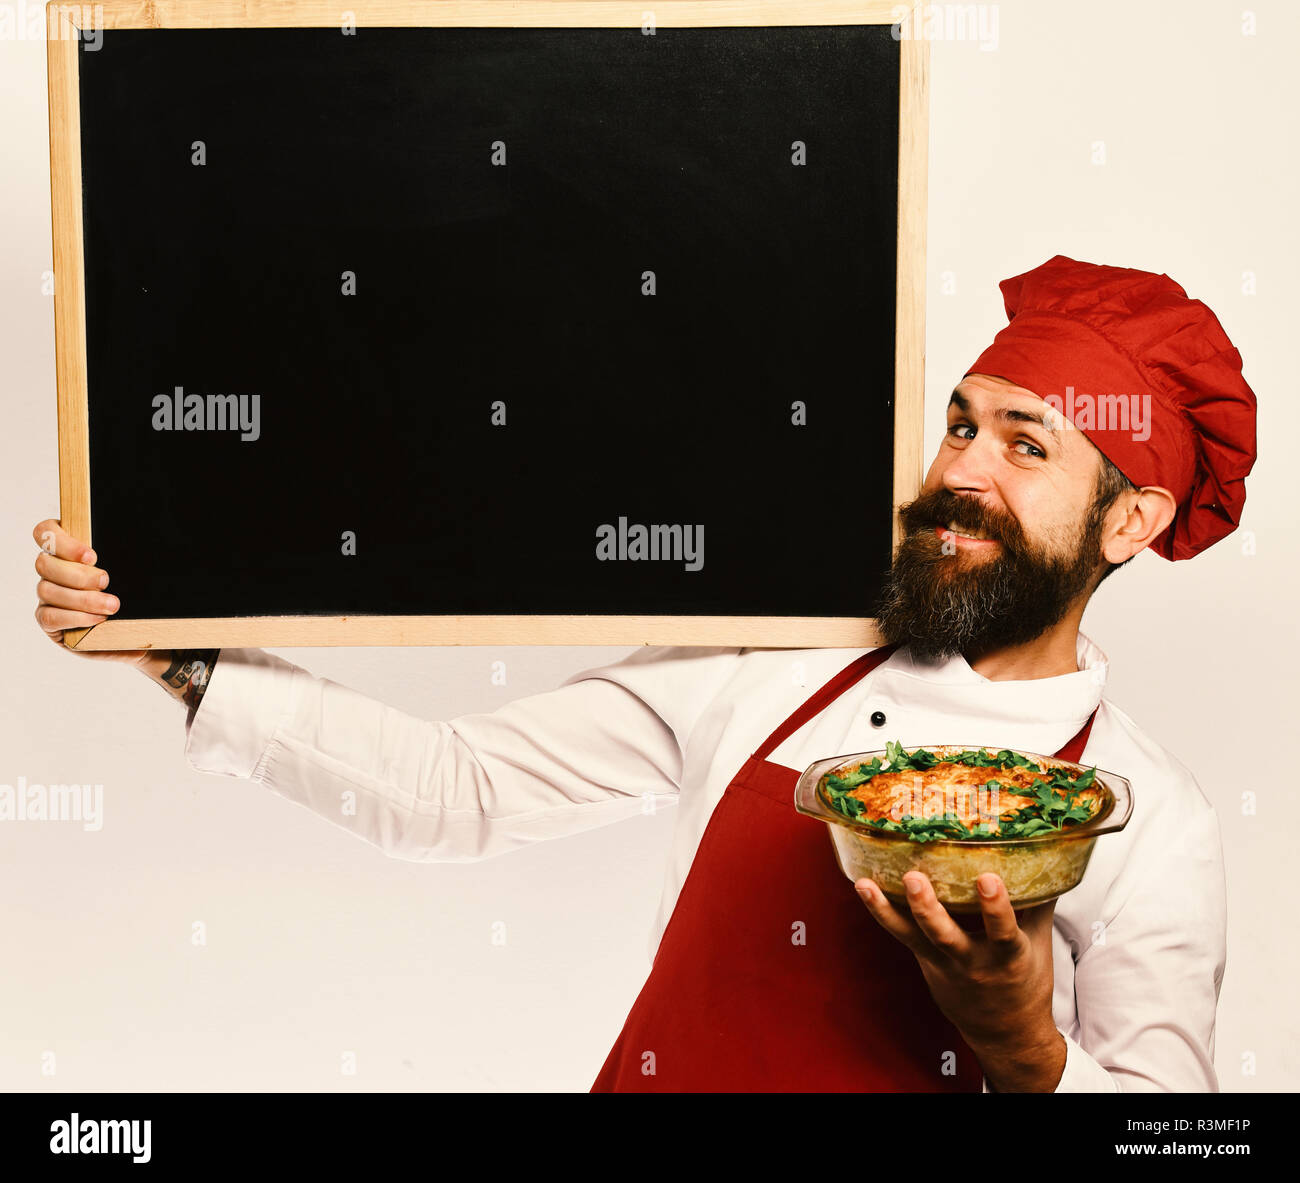 Catering and open day concept. Cook with tricky smile in burgundy uniform holds baked dish and blackboard. Chef holds bowl with potato casserole and b - Stock Image